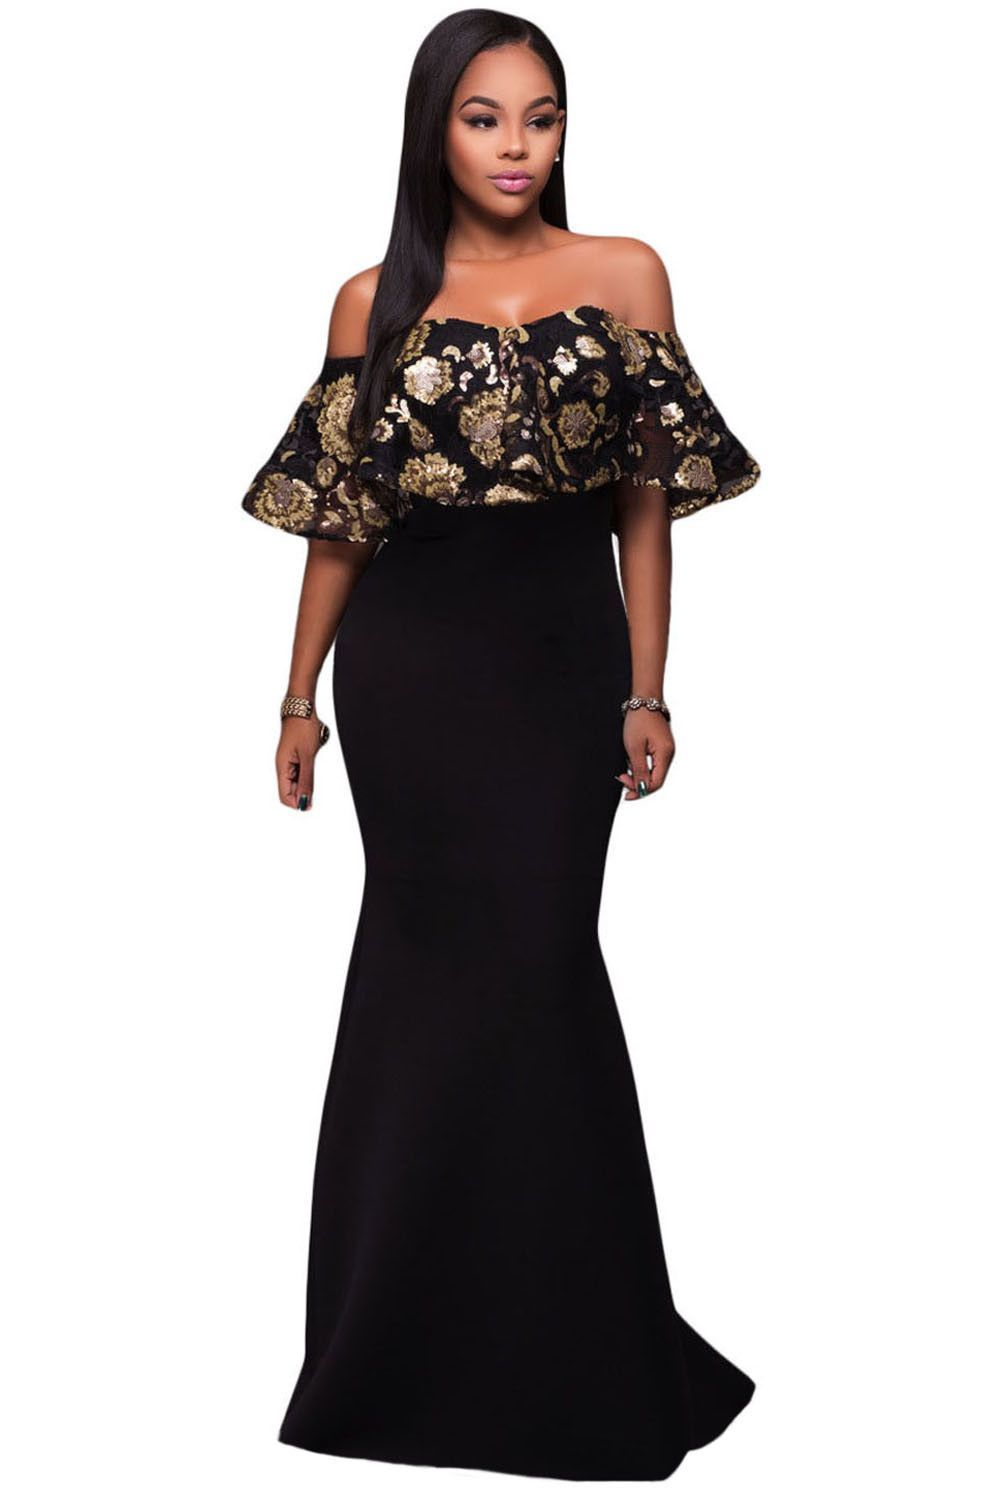 Black gold sequins ruffle strapless long dress products